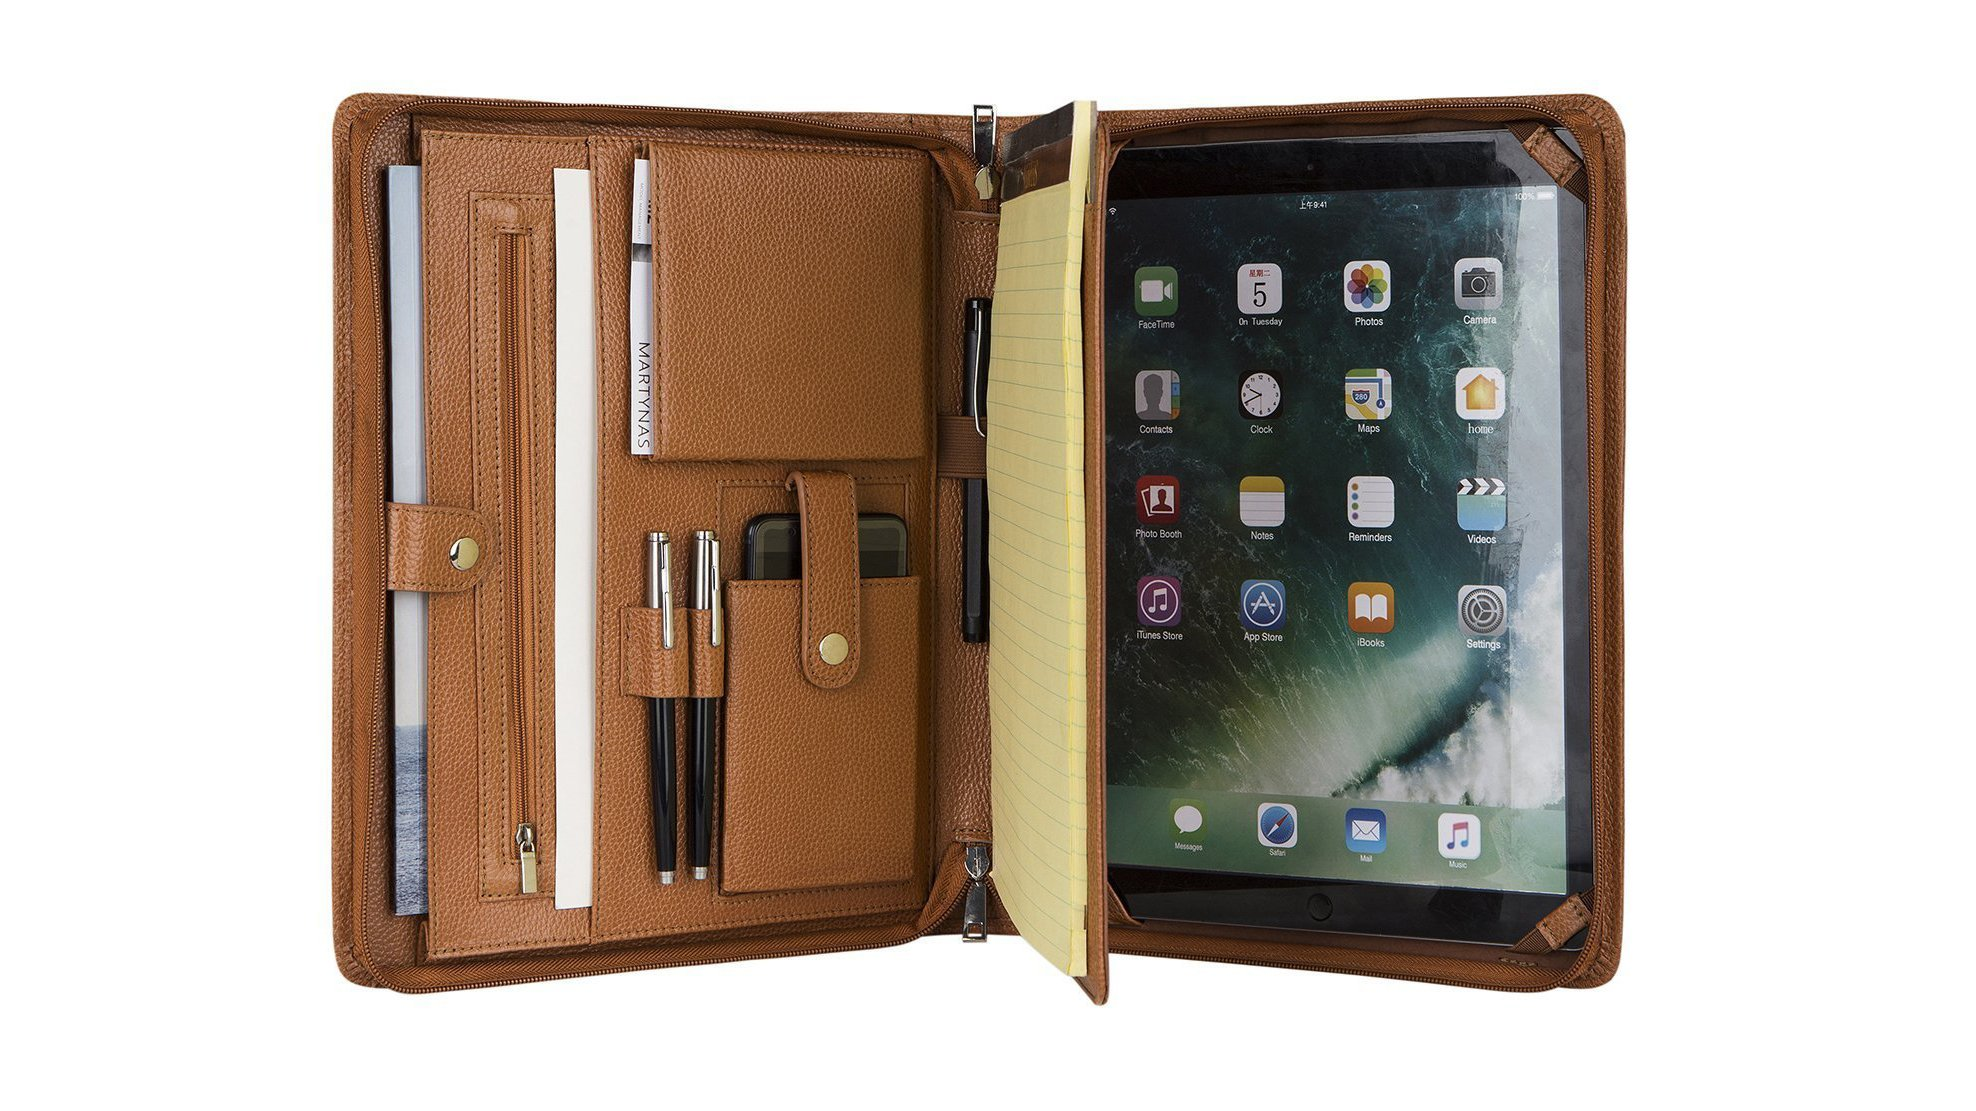 Best Ipad Pro Case 2020 Protect Your Prized Apple Tablet From Only 8 Expert Reviews